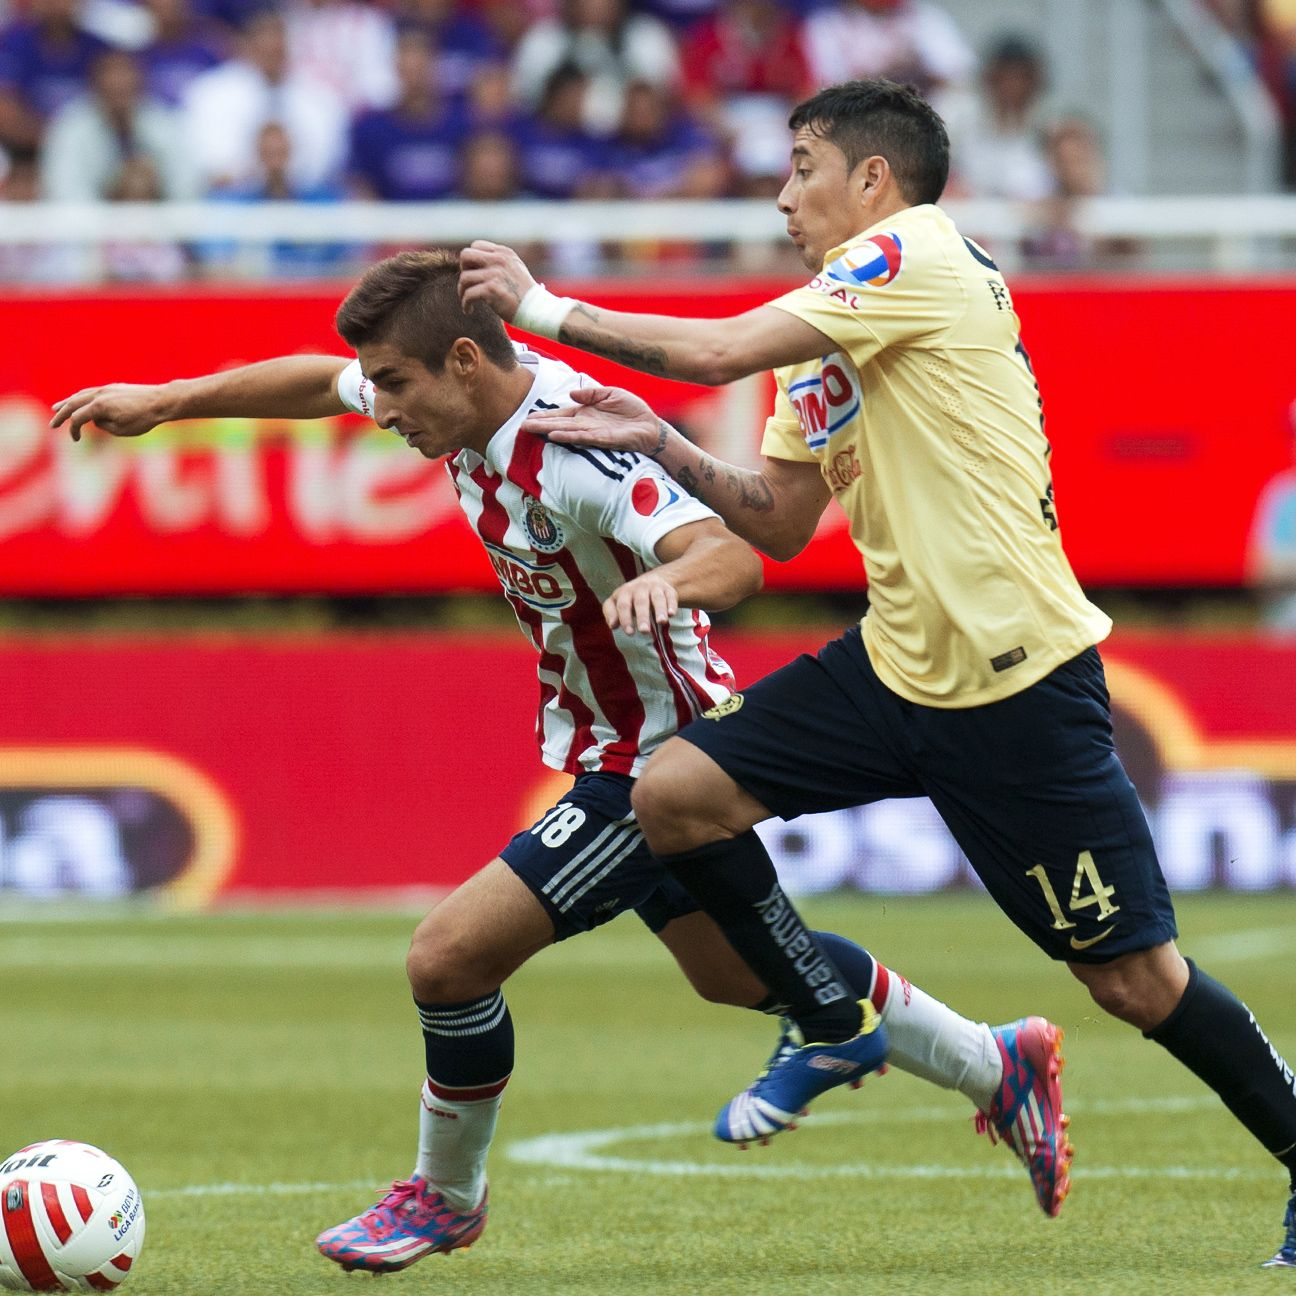 Chivas will need the speed of players like Isaac Brizuela to make a difference against America.